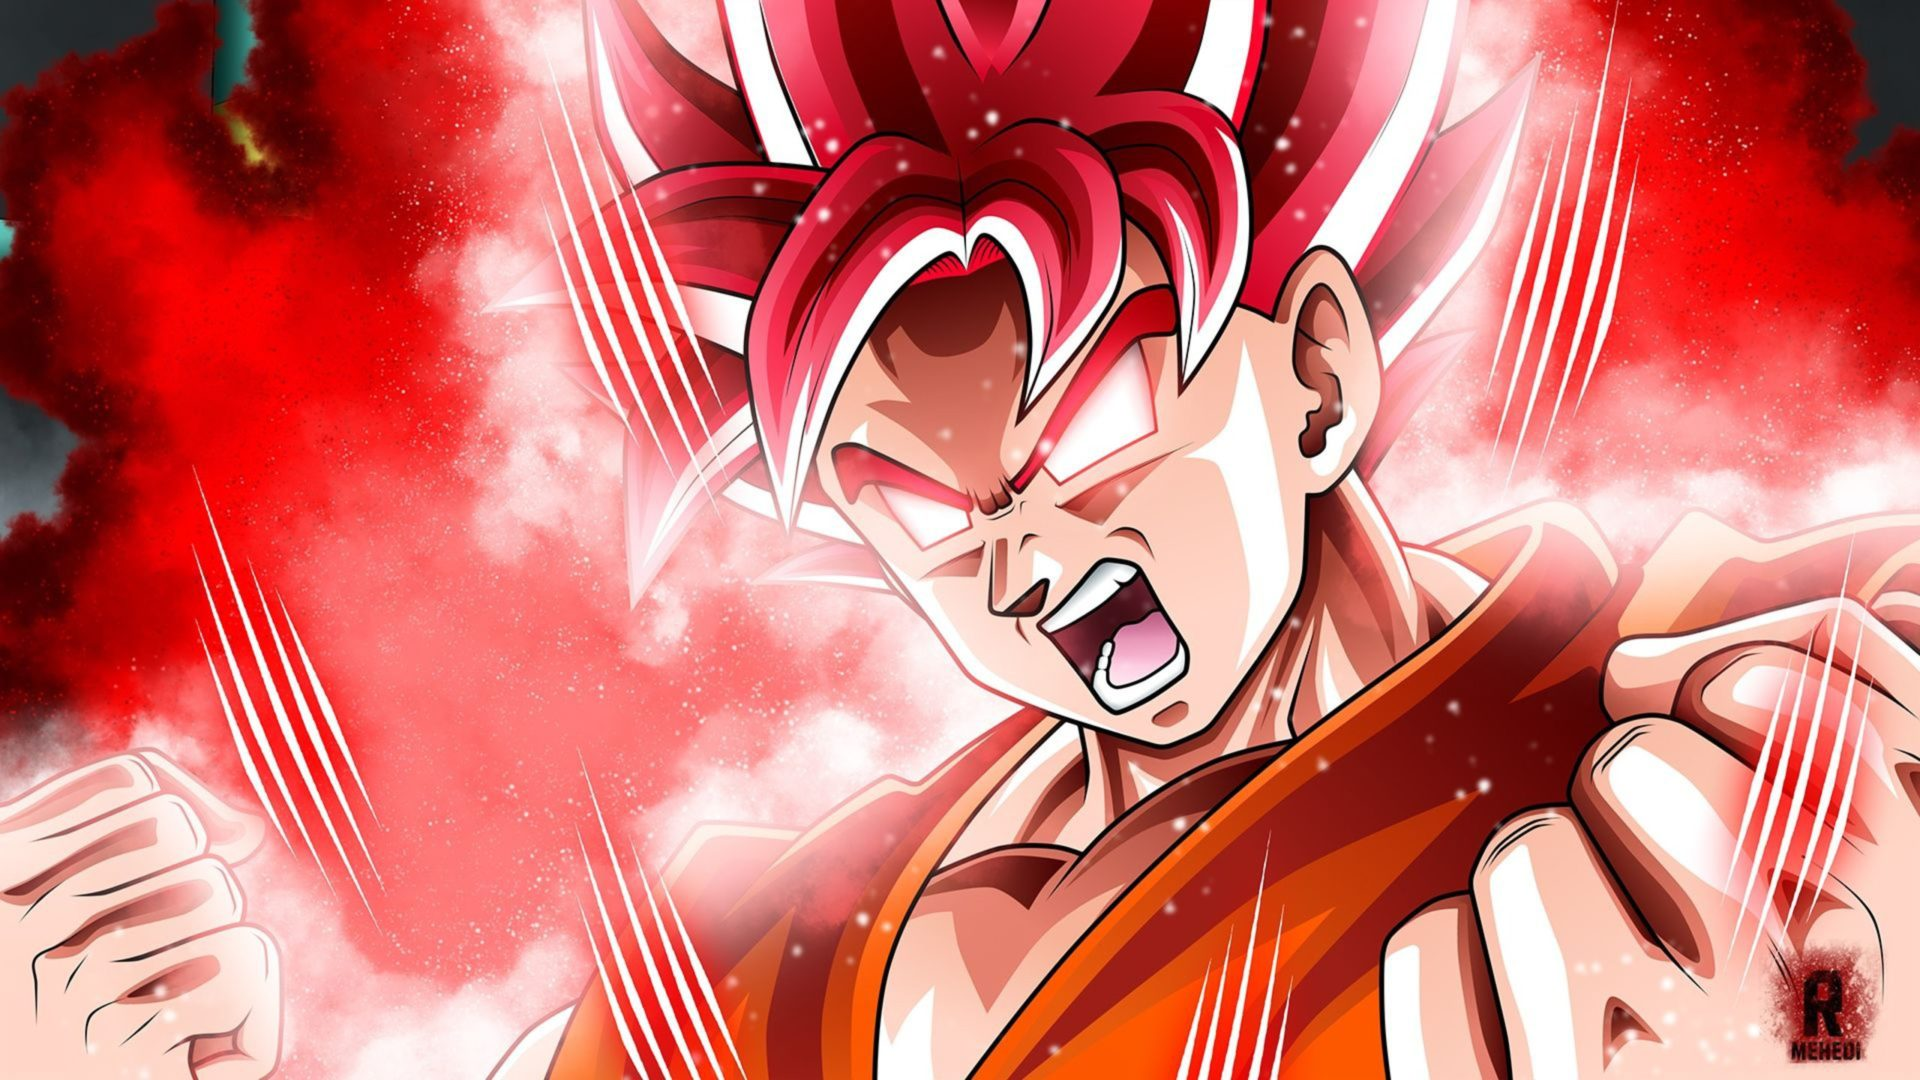 Dragon Ball Z Hd Wallpapers New Tab Theme Playtime